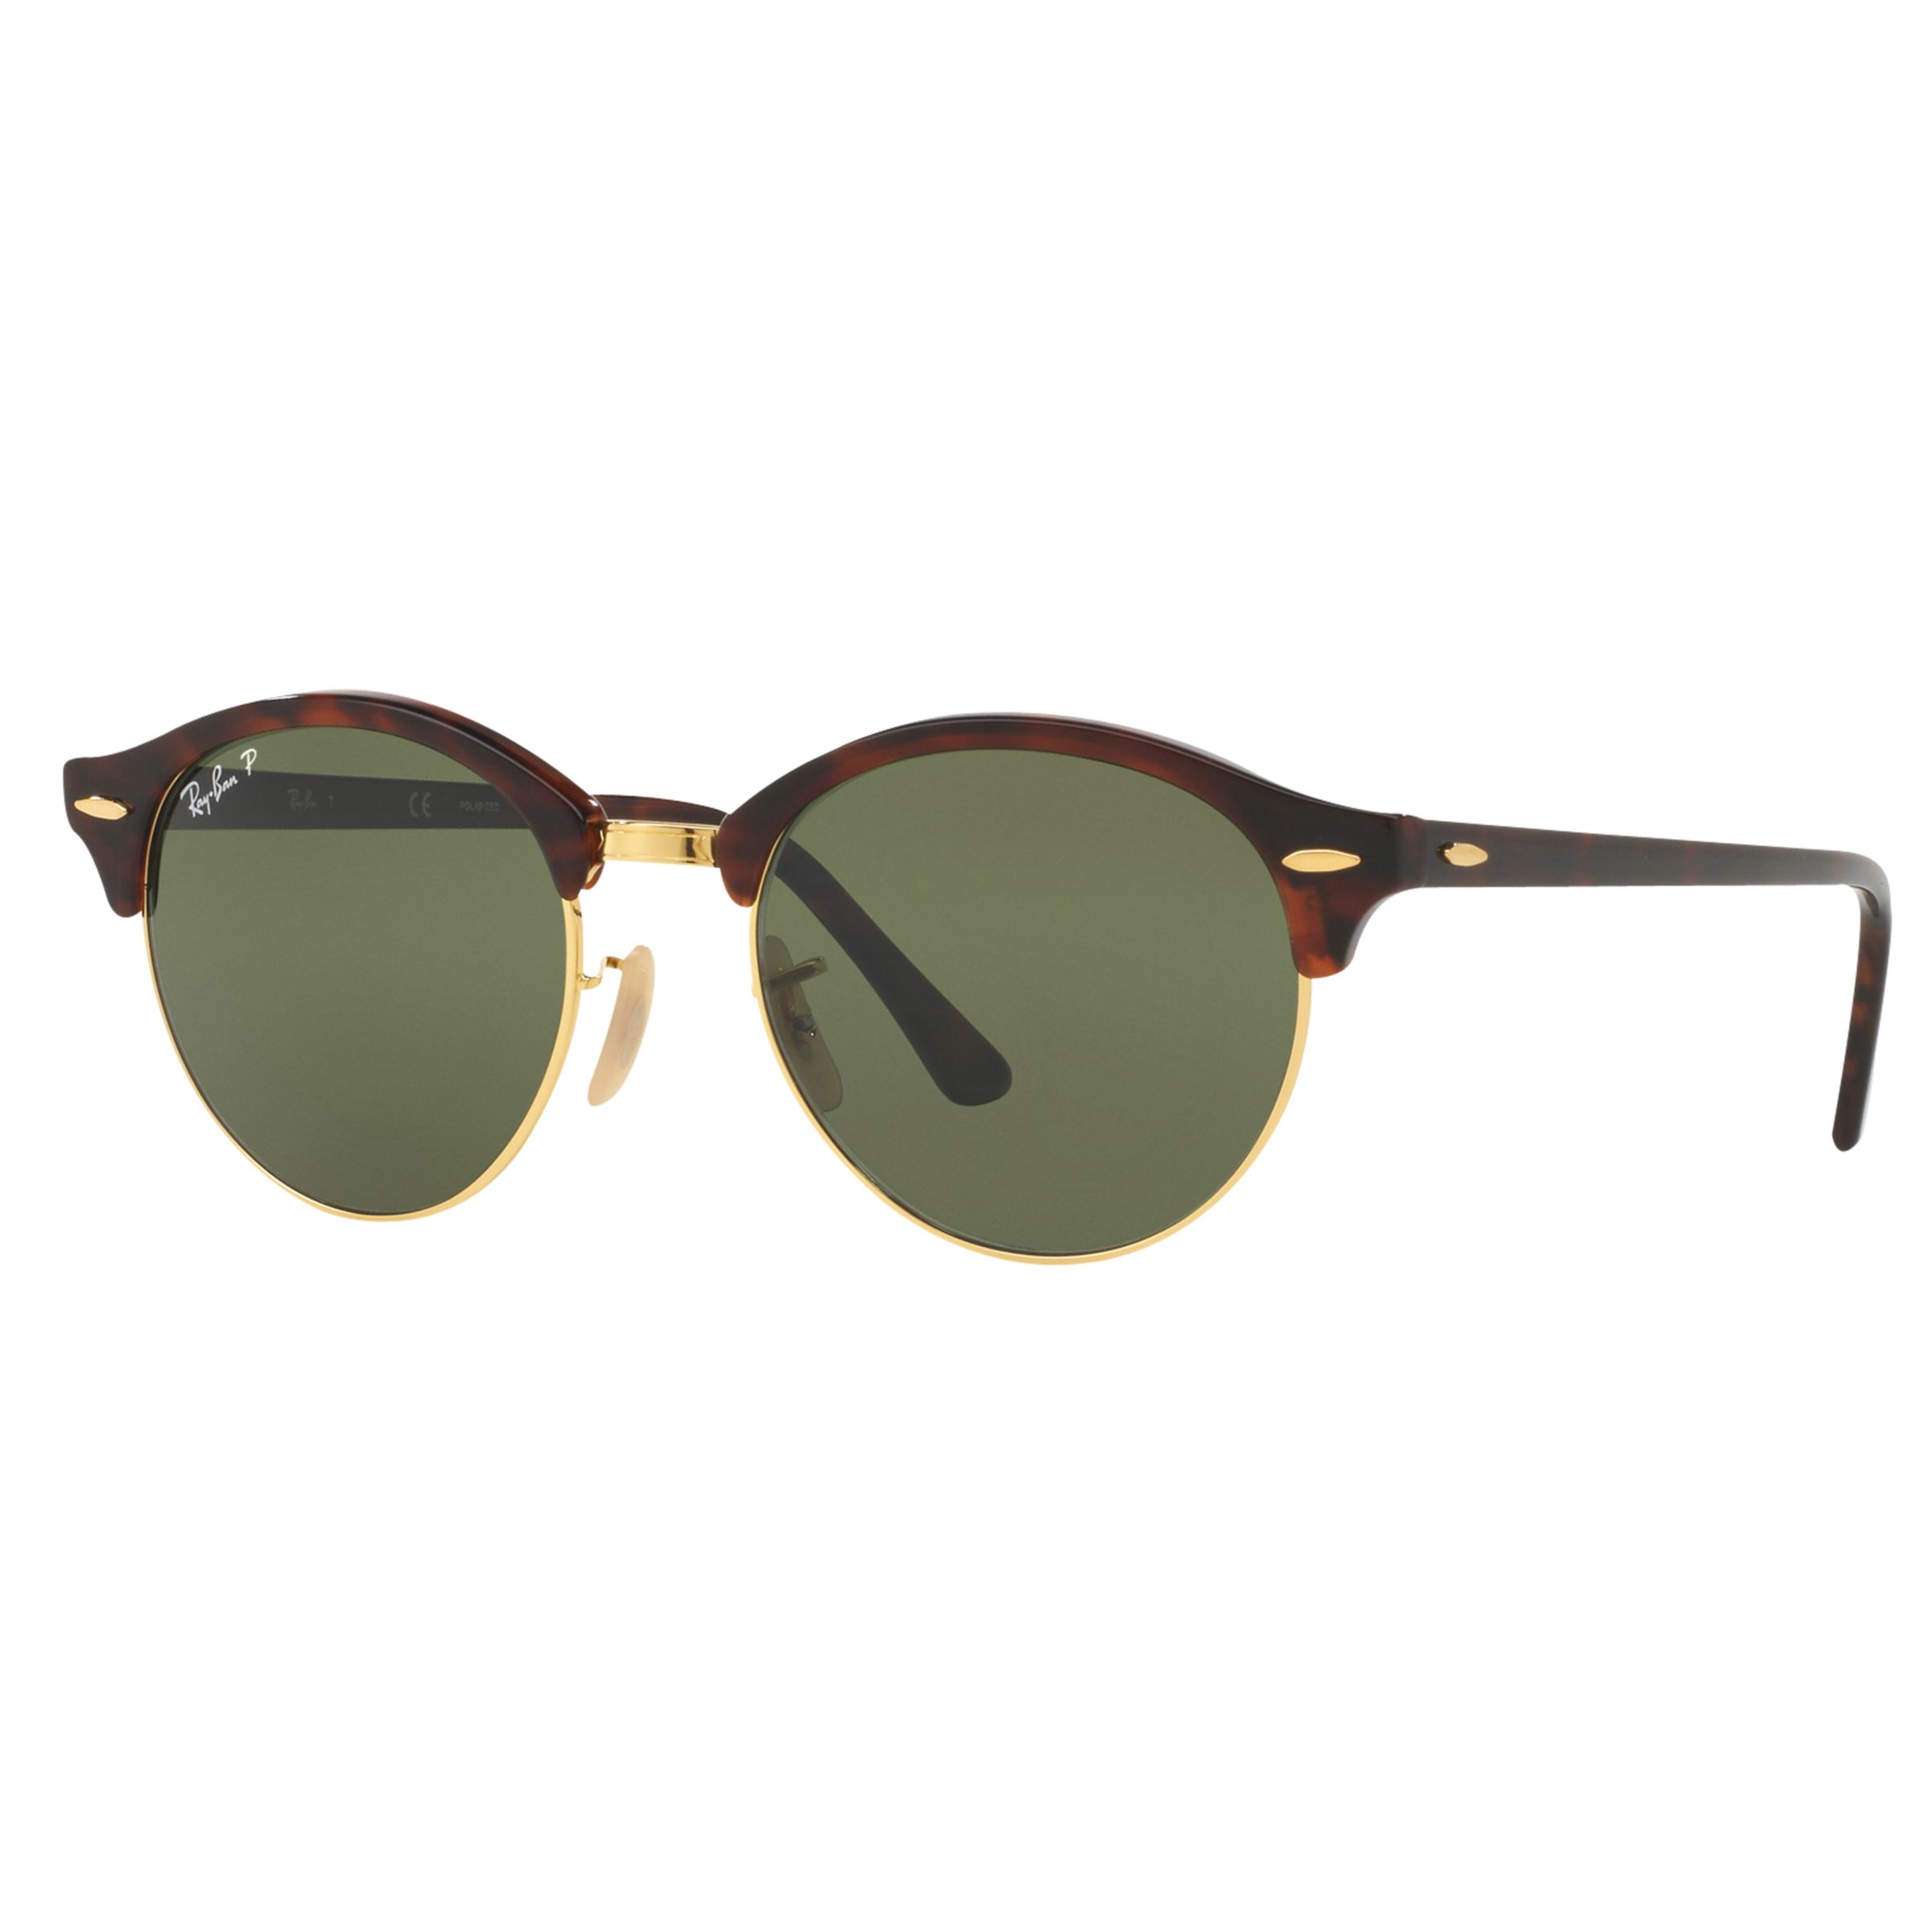 Ray-ban Ray-Ban RB4246 Clubround Polarised Round Sunglasses